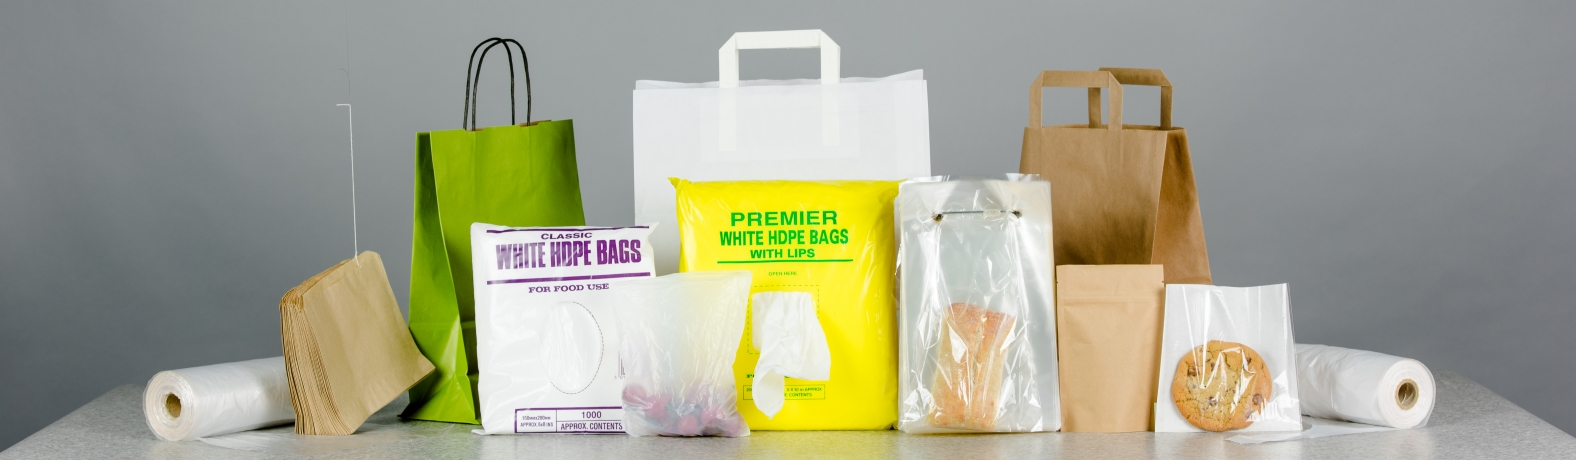 Produce and paper bags